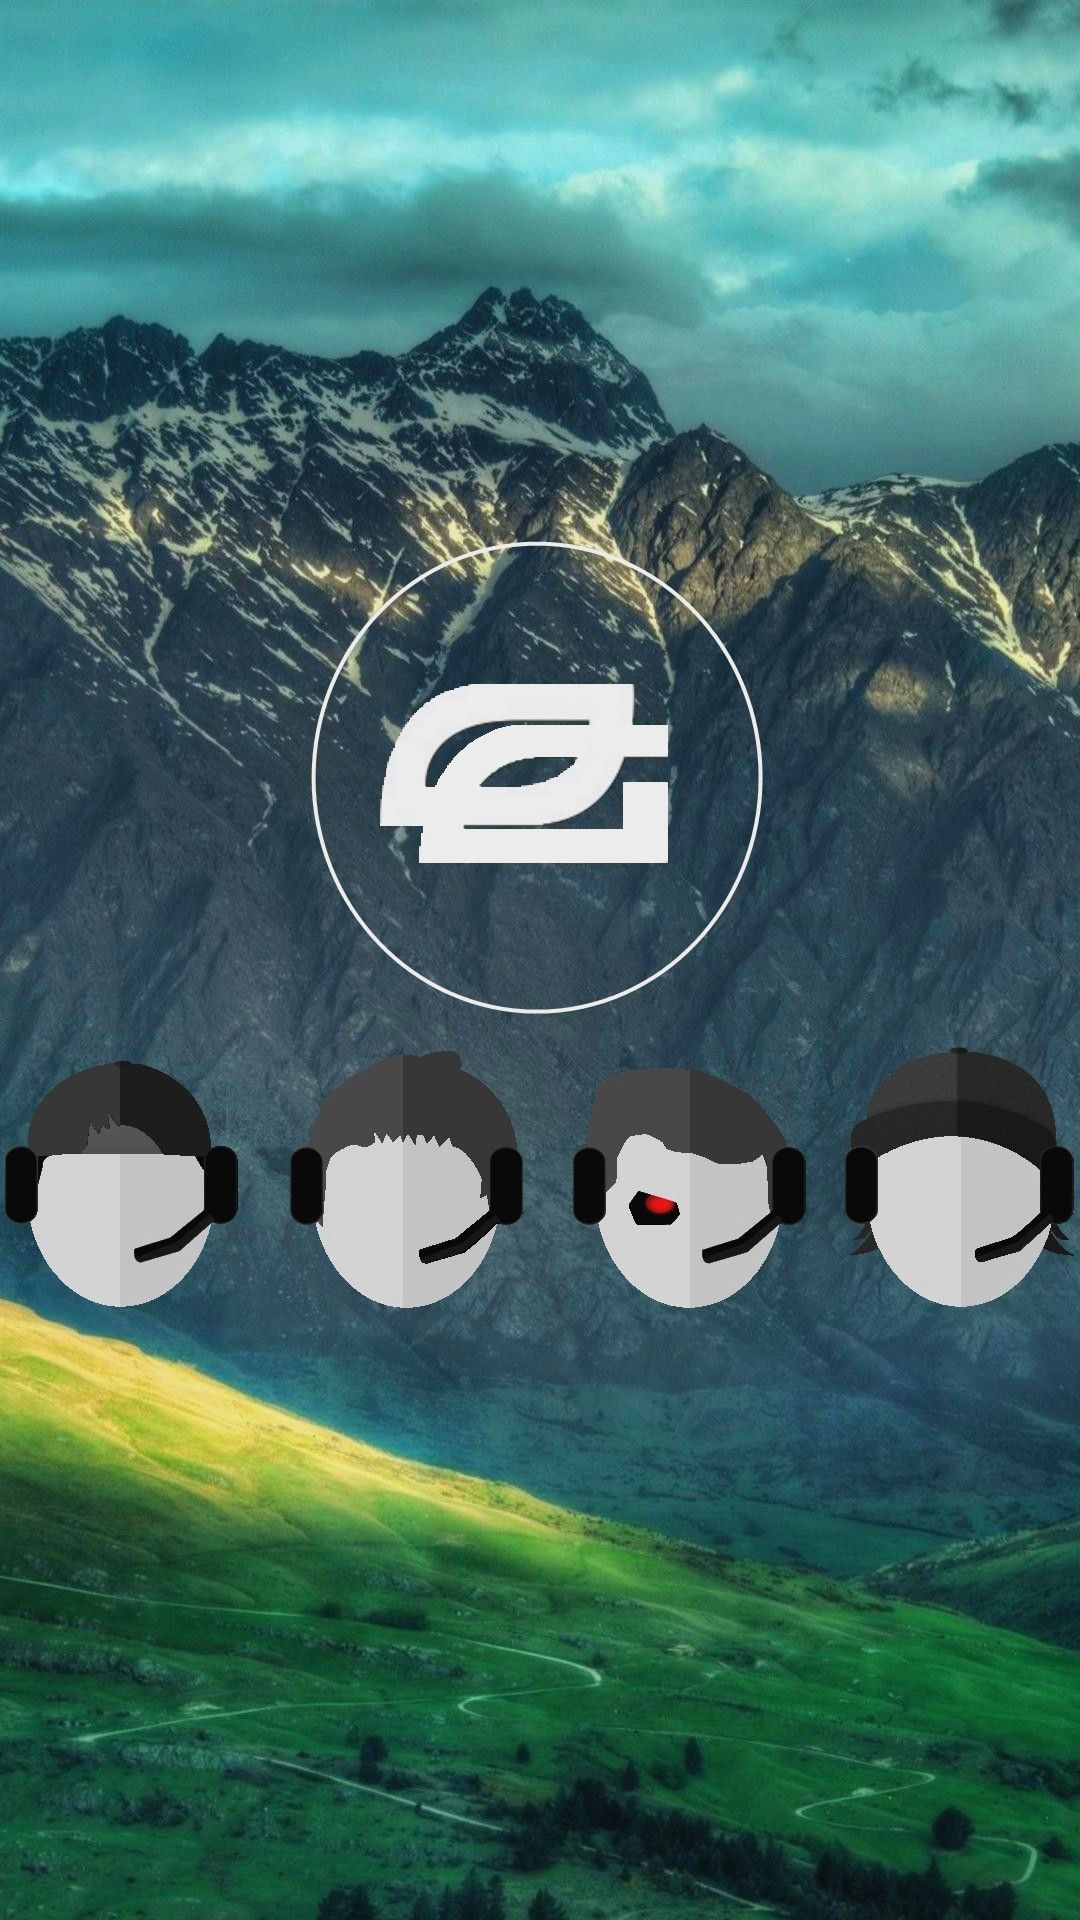 Optic Gaming. Brand logo iPhone wallpapers. mobile9